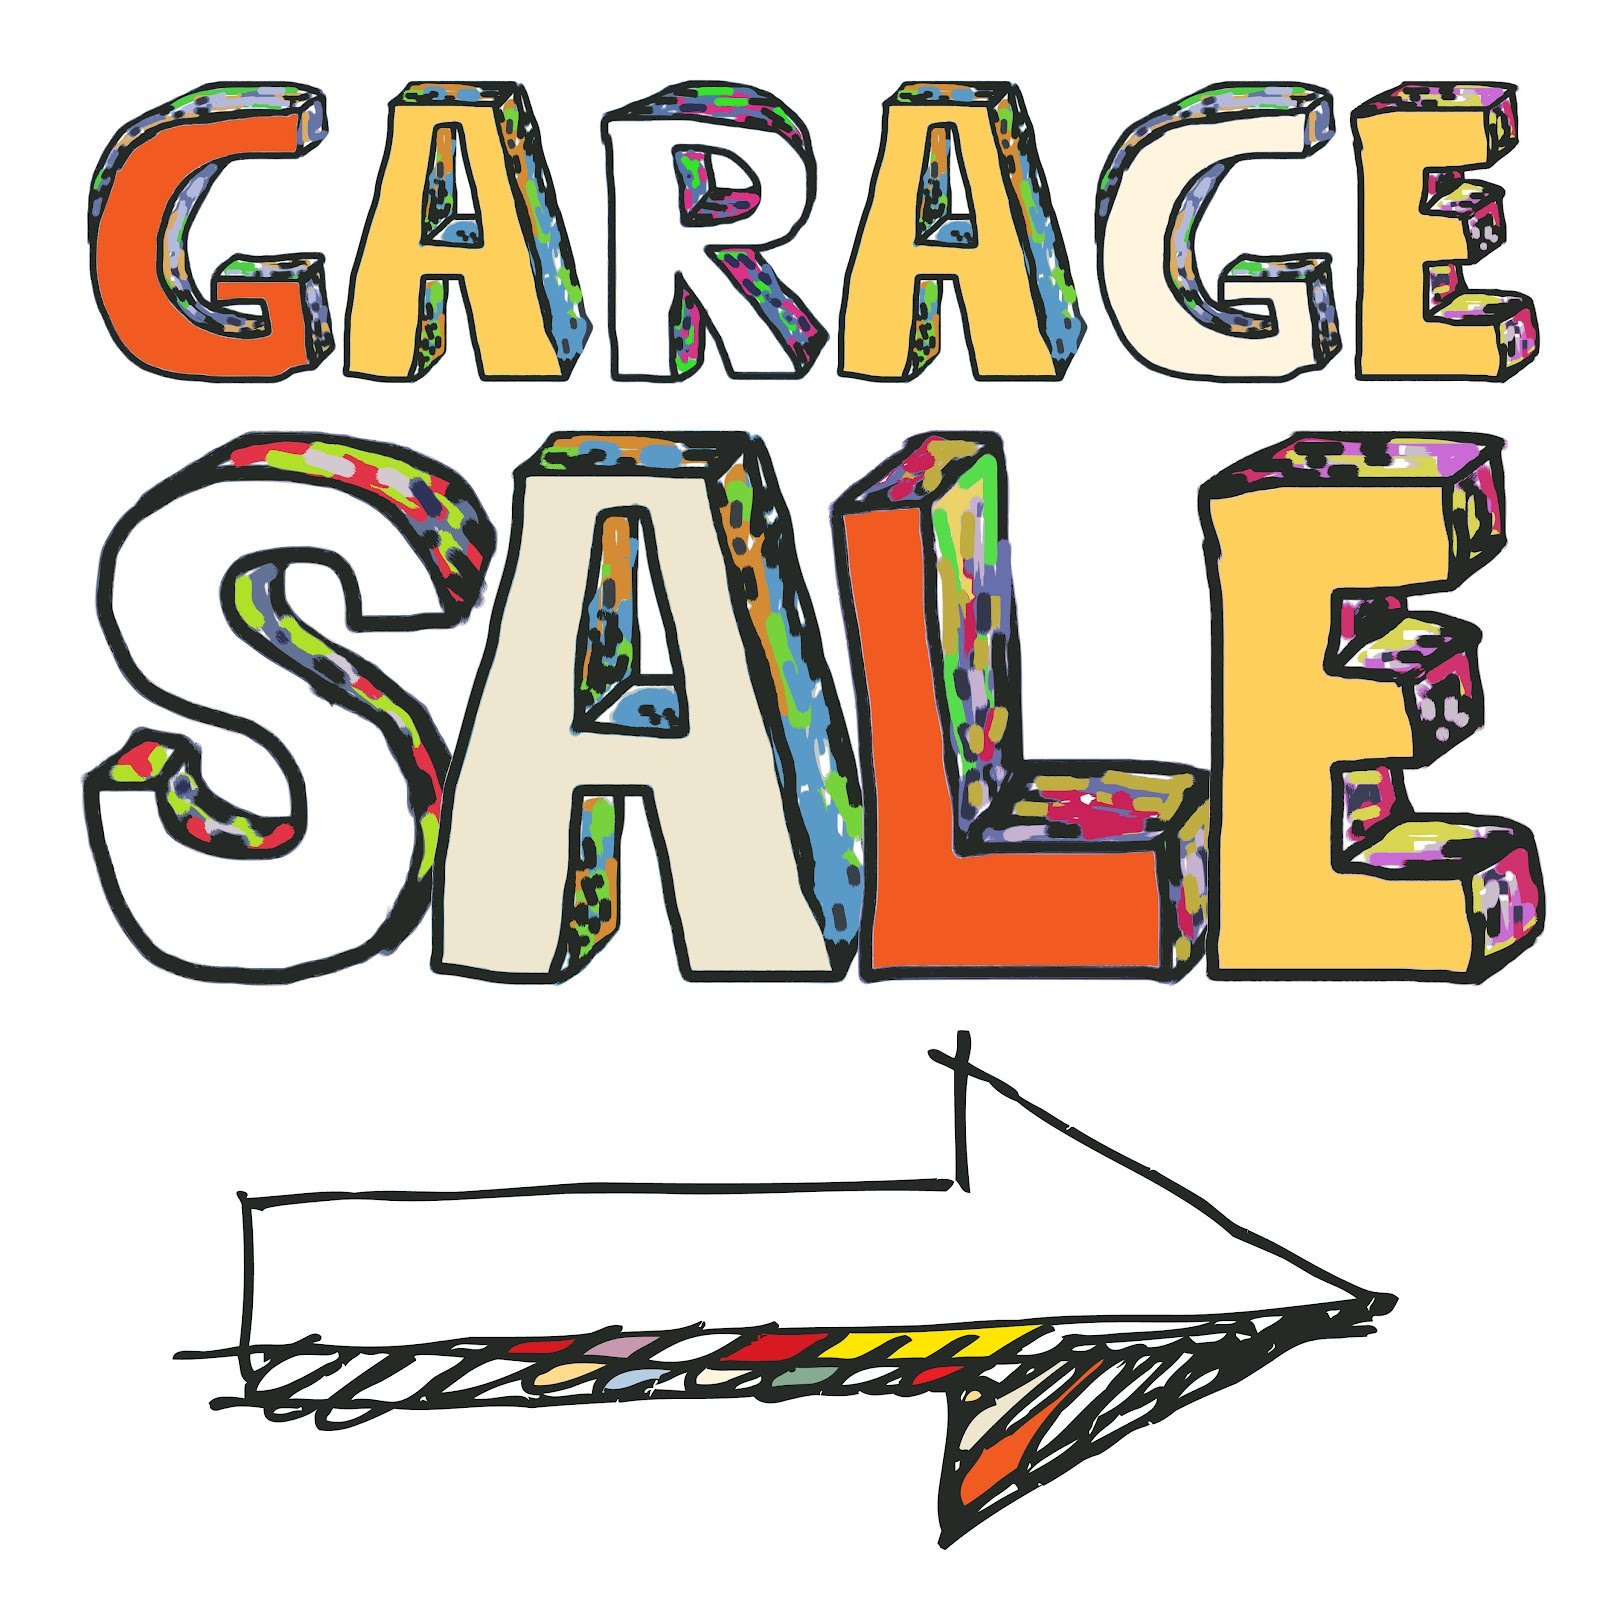 Estate Sales, Garage Sales, More Ways To Downsize  Dream. Installing A Garage Door. Sliding Barn Door Hardware Home Depot. Craftsman Garage Door Remote Control. Curved Shower Doors. Trifold Doors. Garage Pulley System. Garage Door Seal Top. Garage Door Options